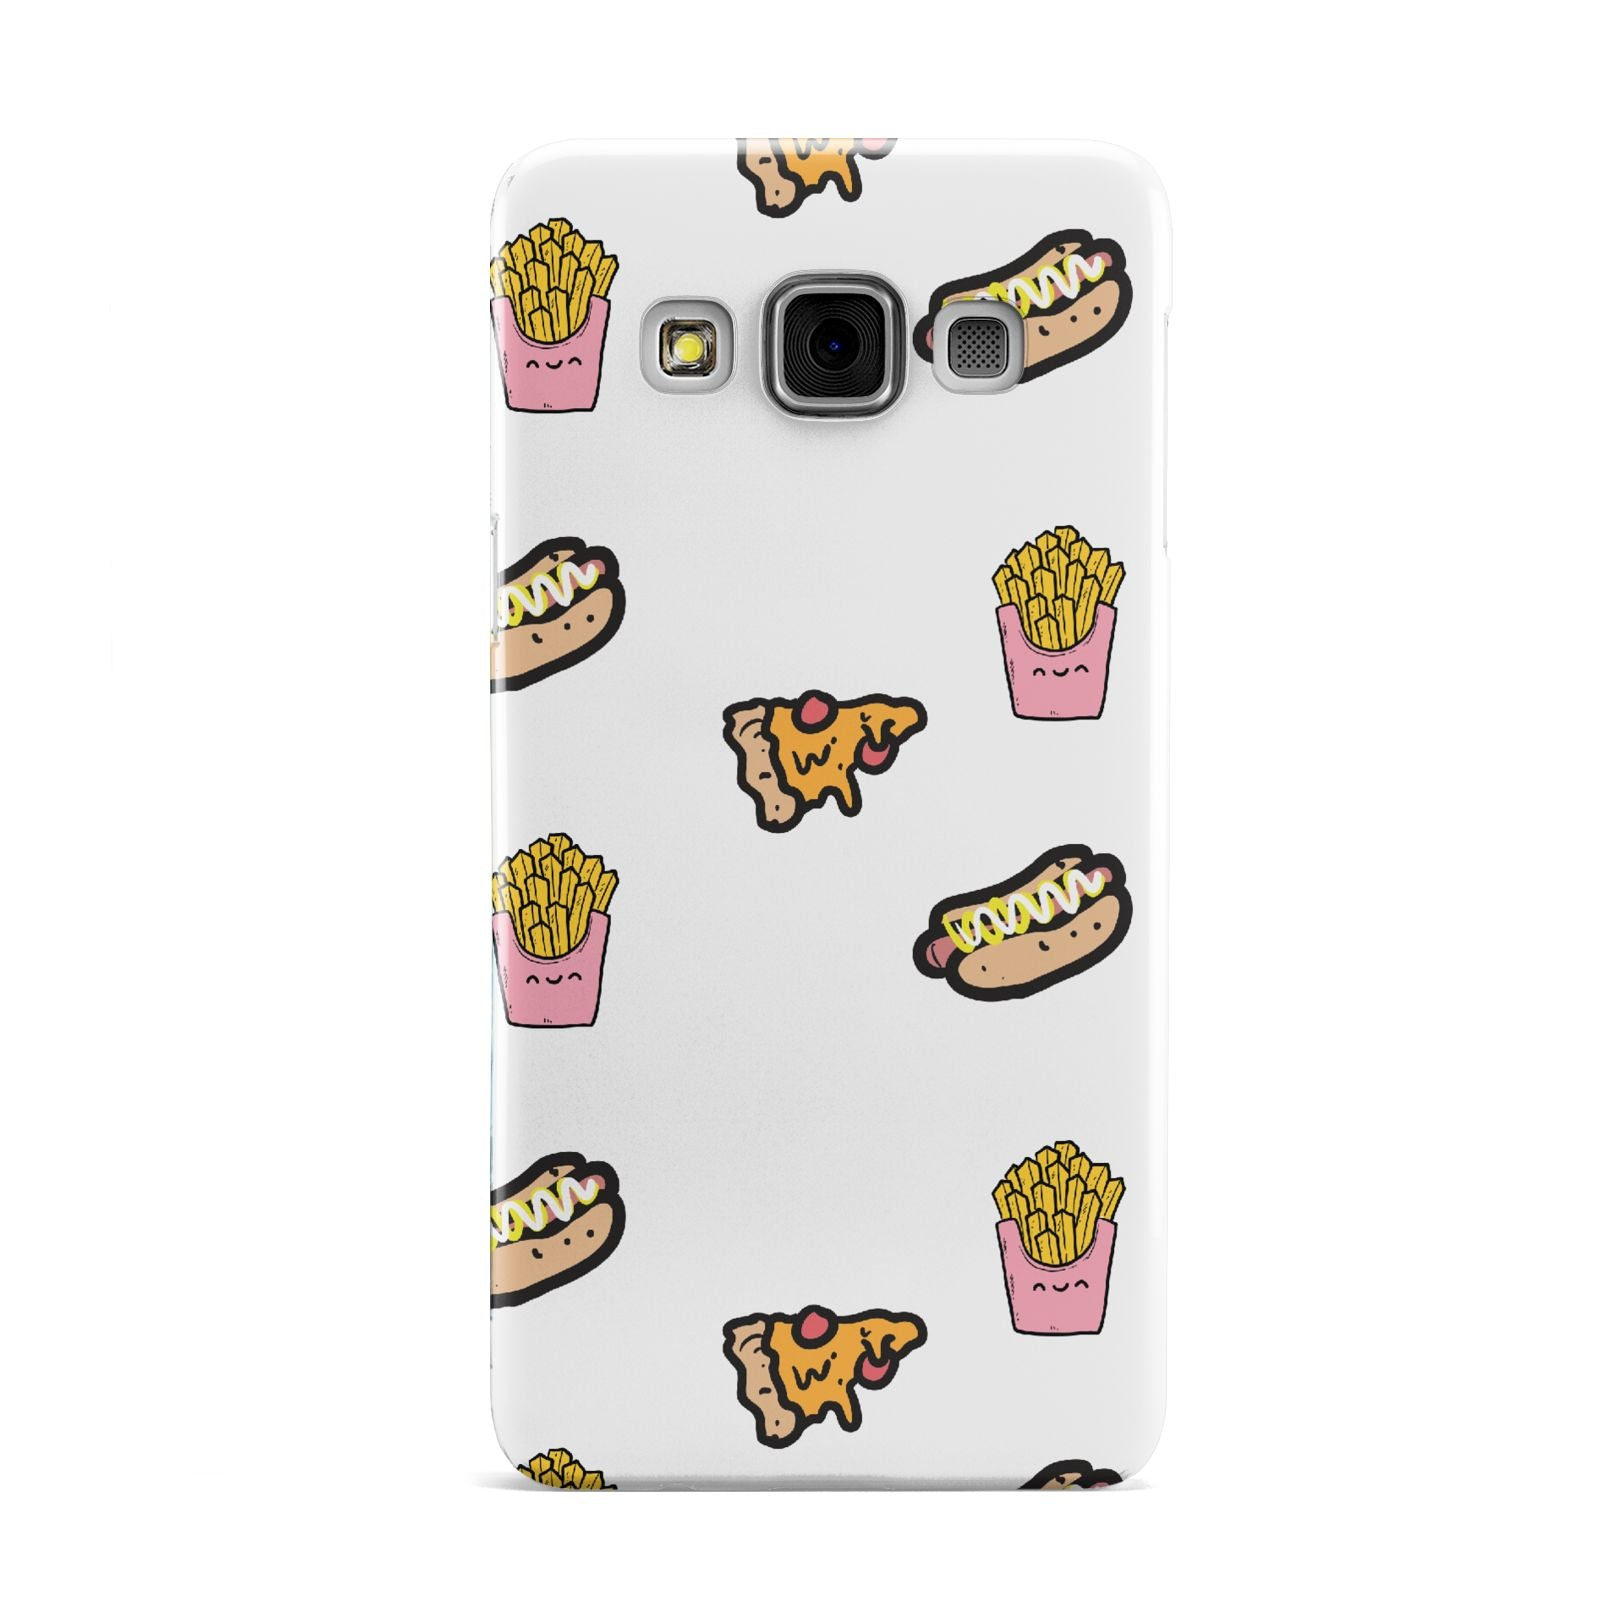 Fries Pizza Hot Dog Samsung Galaxy A3 Case